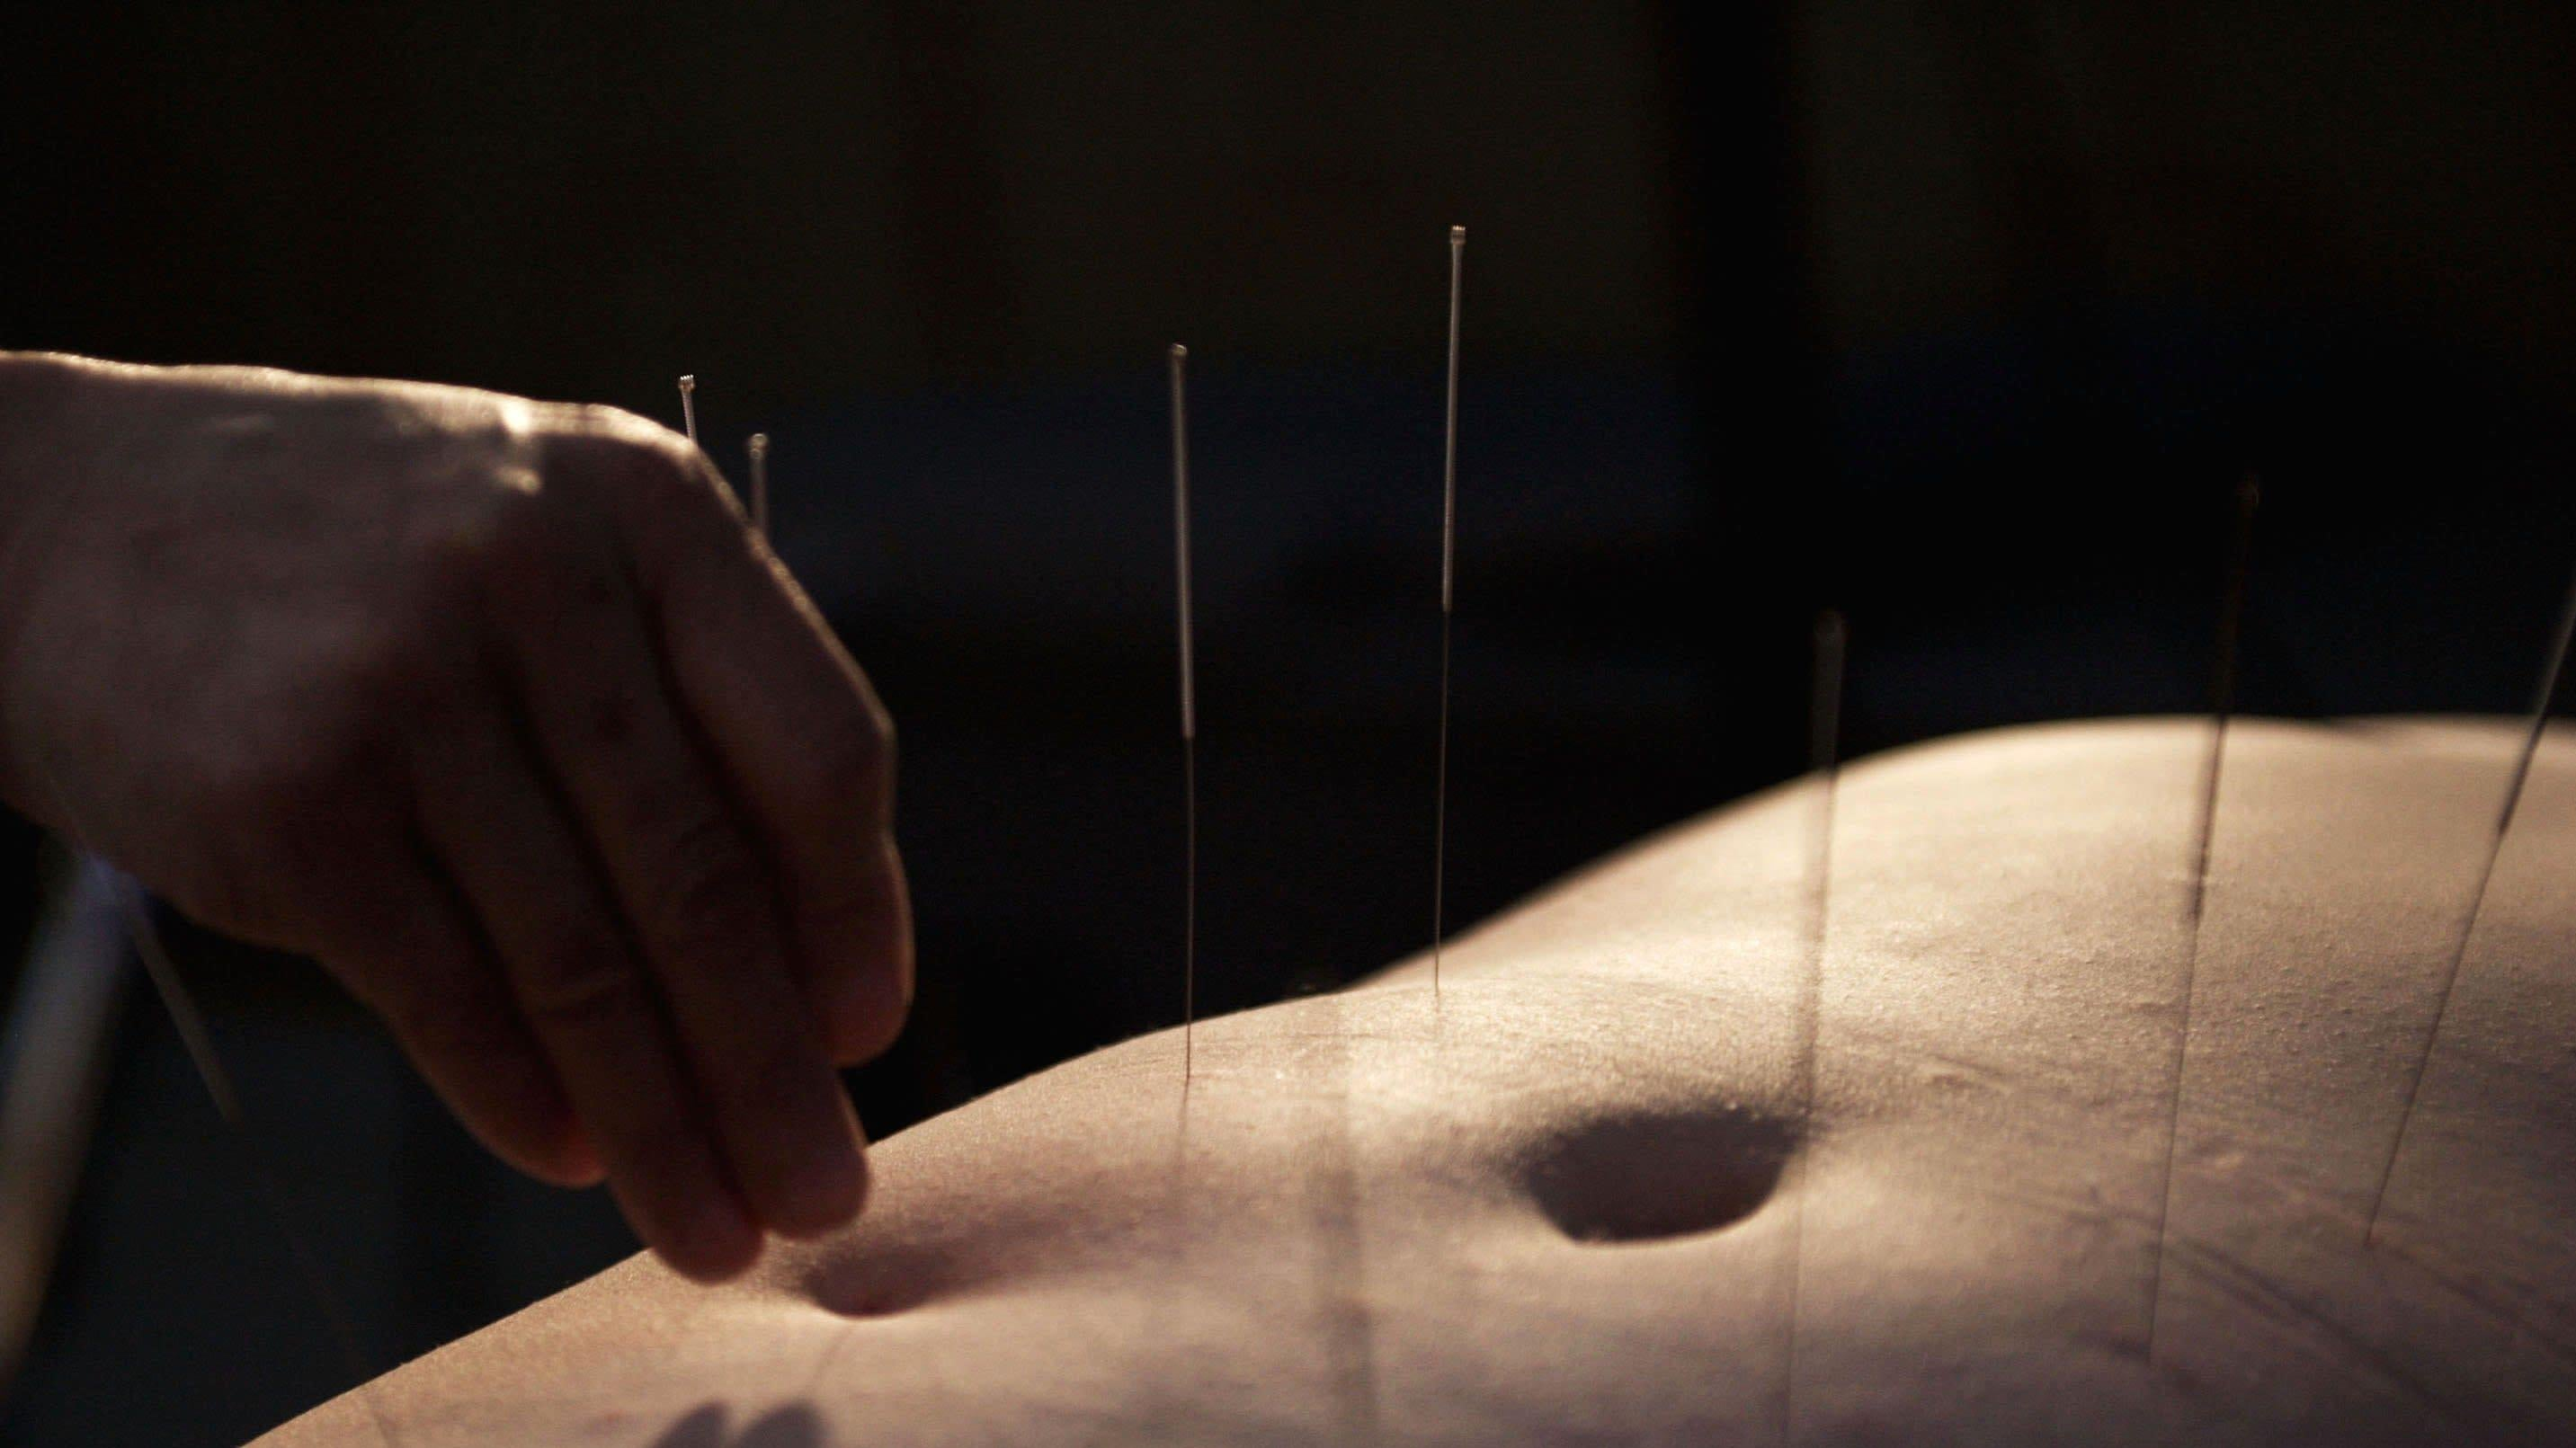 Acupuncturist Went Too Deep, Punctured Patient's Lungs